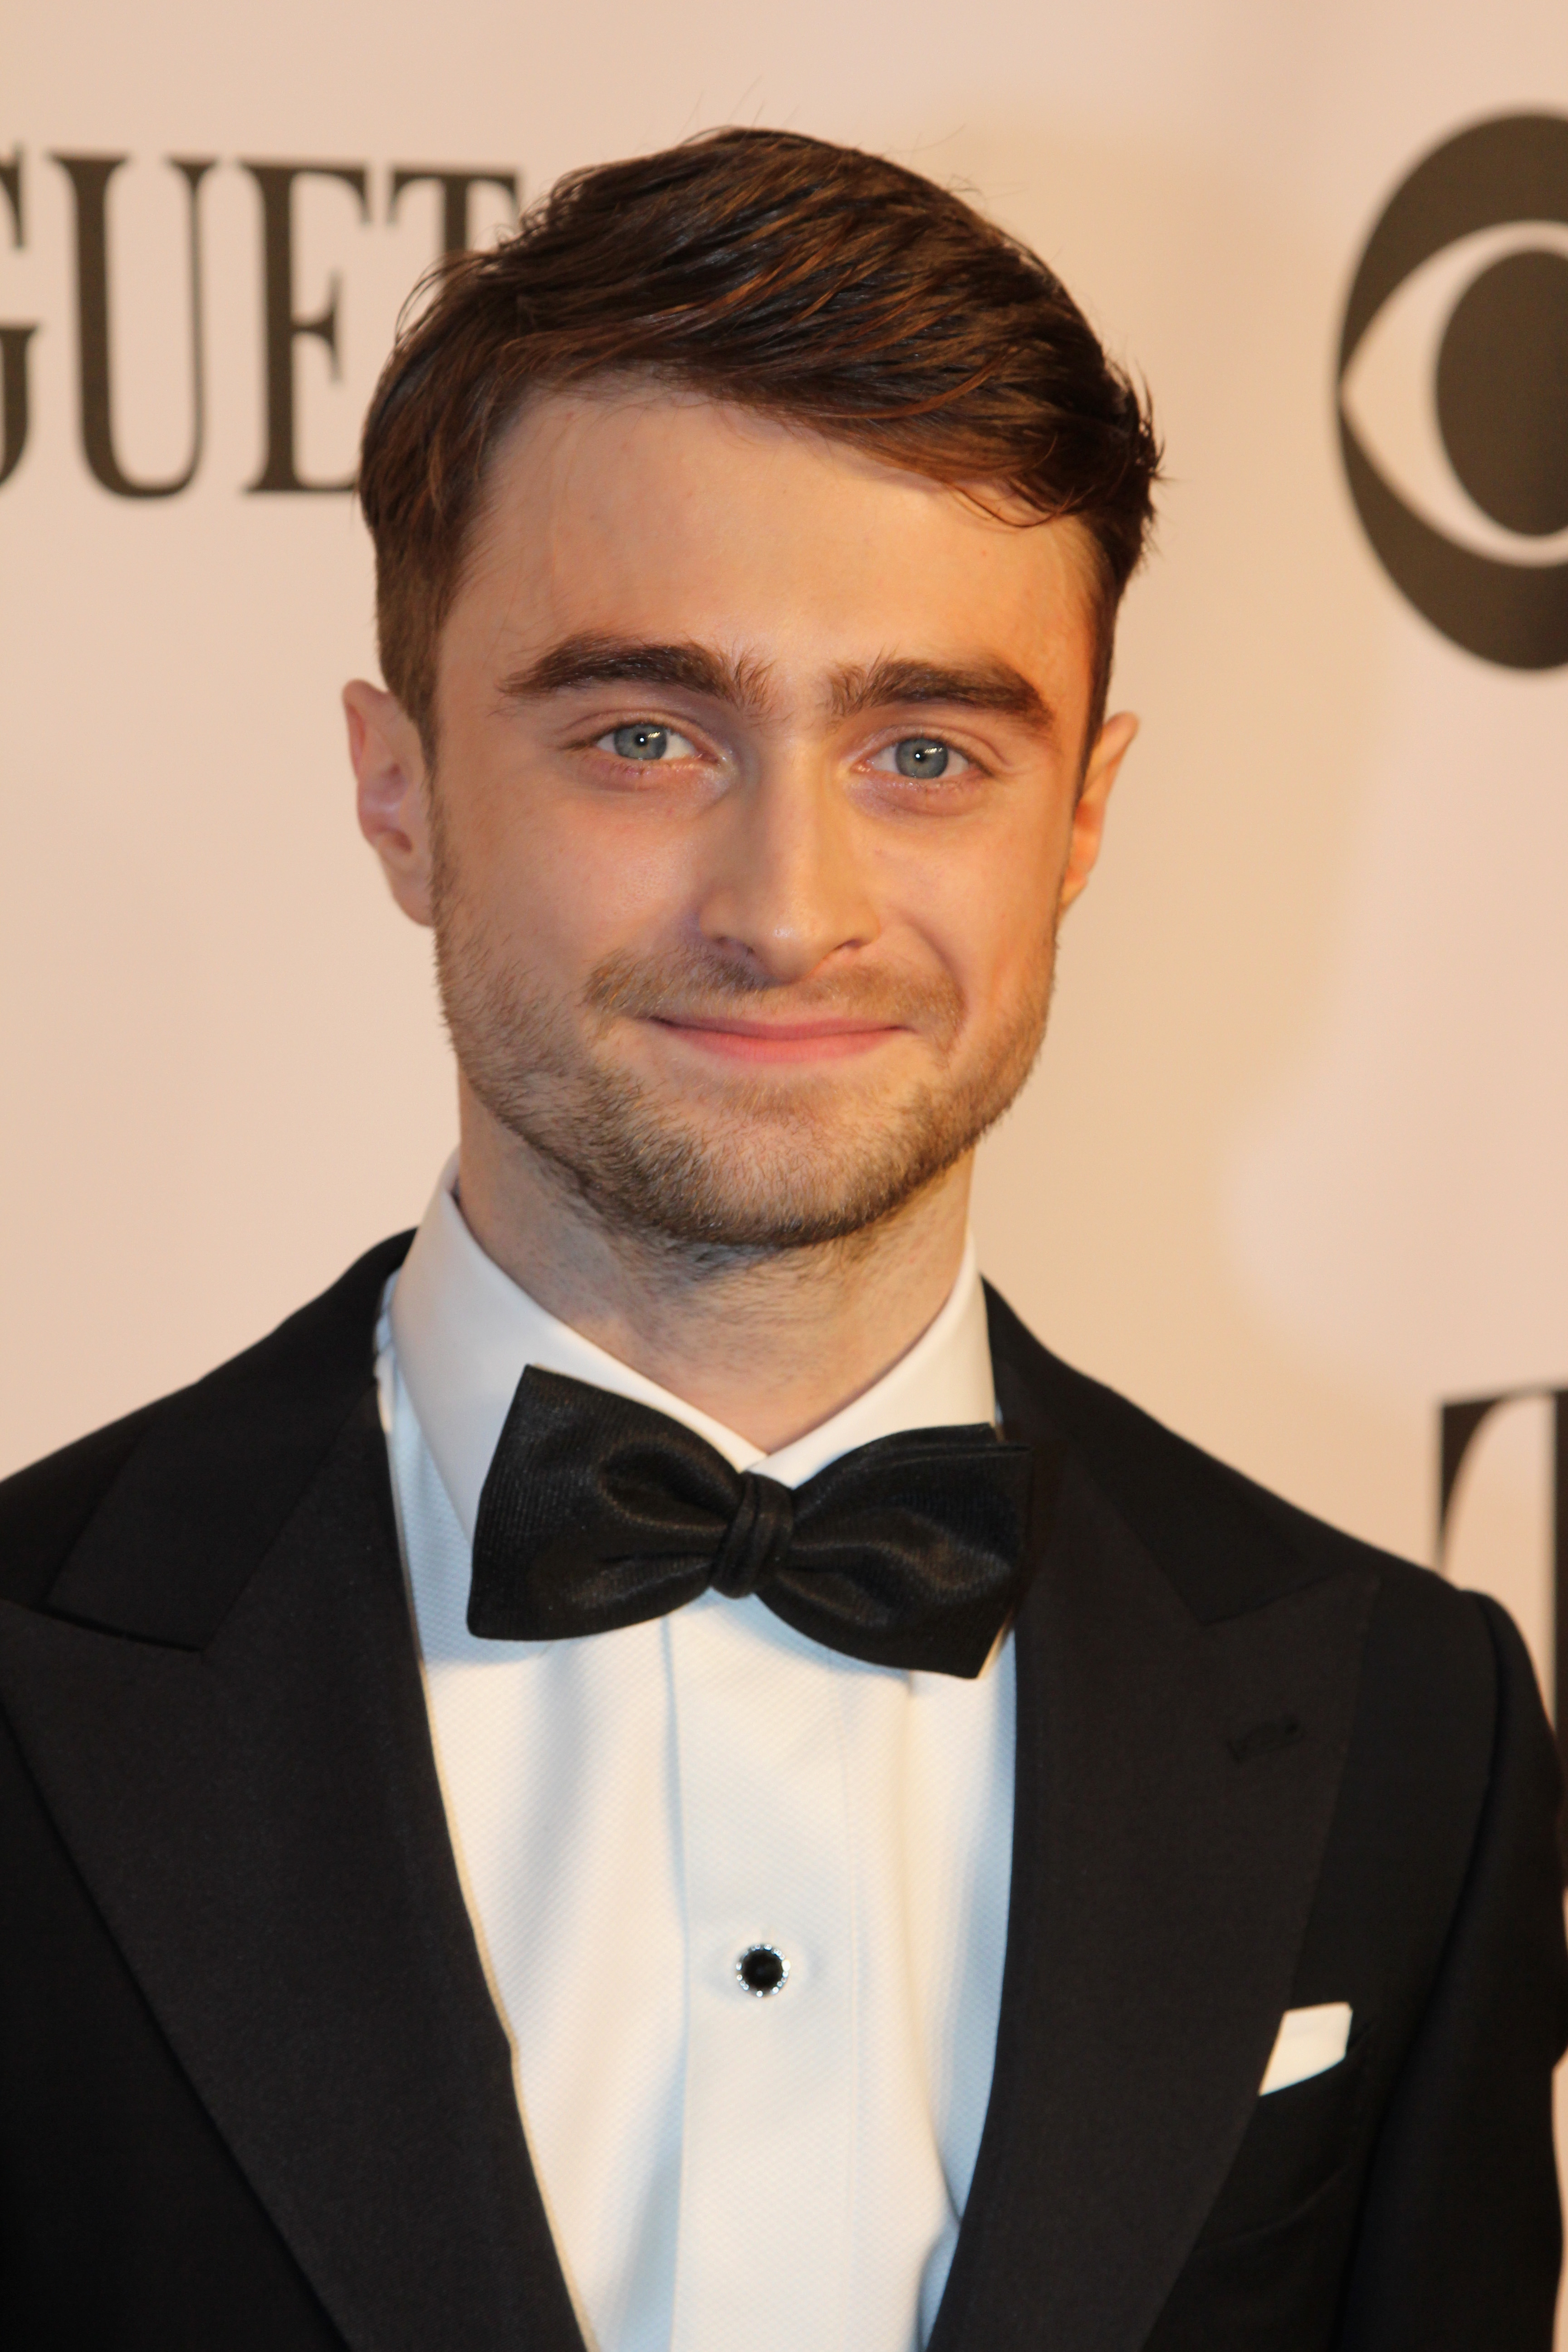 Daniel Radcliffe attends the American Theatre Wing's 68th Annual Tony Awards at Radio City Music Hall on June 8, 2014 in New York City.